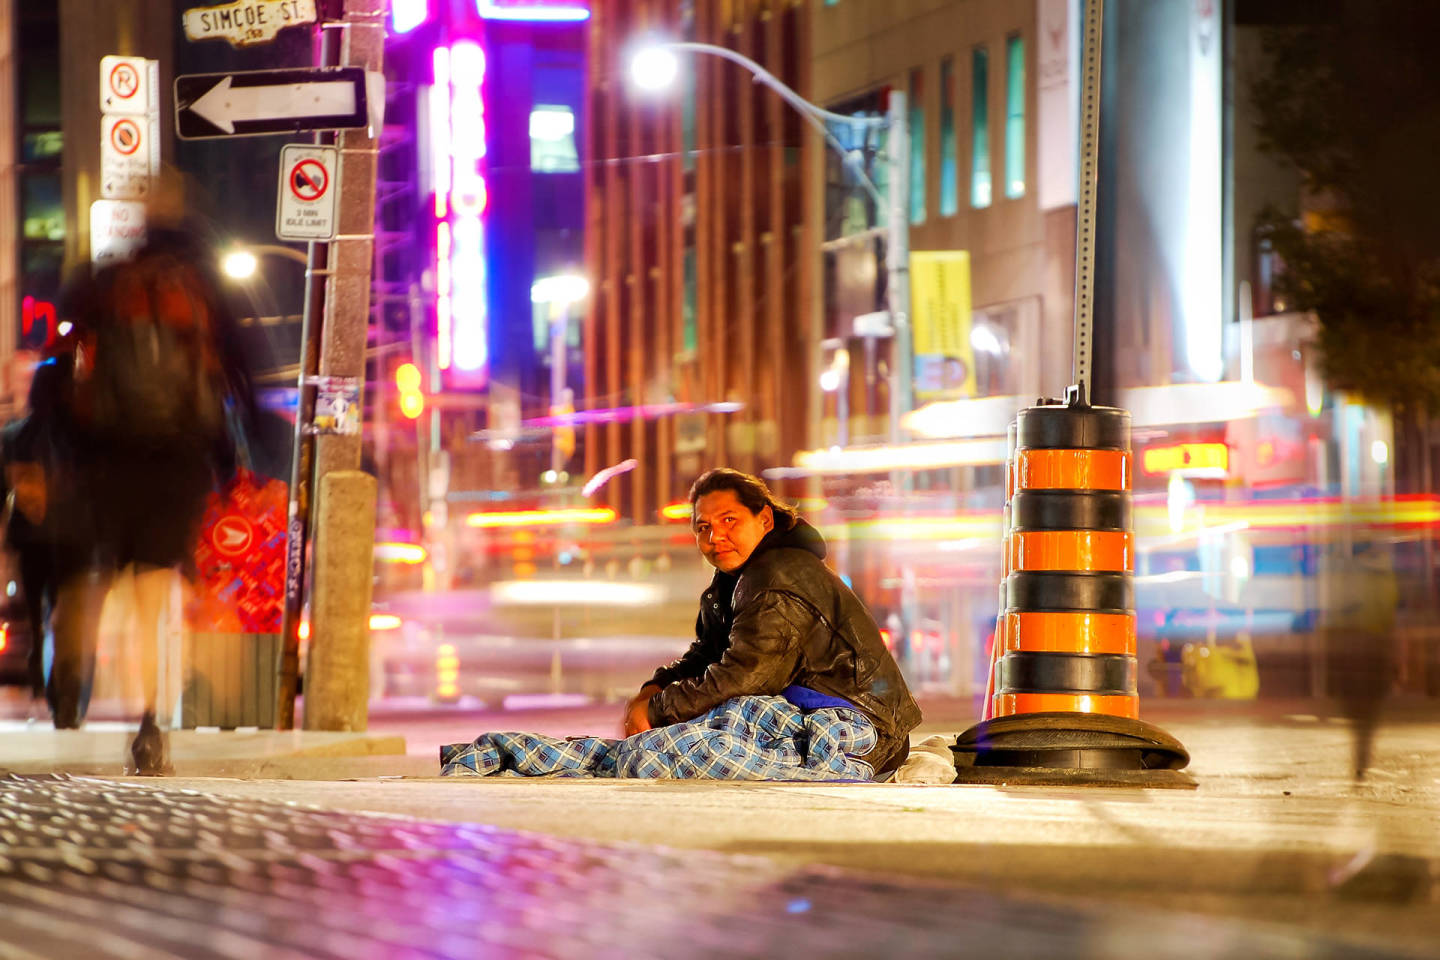 Toronto Homeless Native American Guy. Long Exposure on Wellington St.